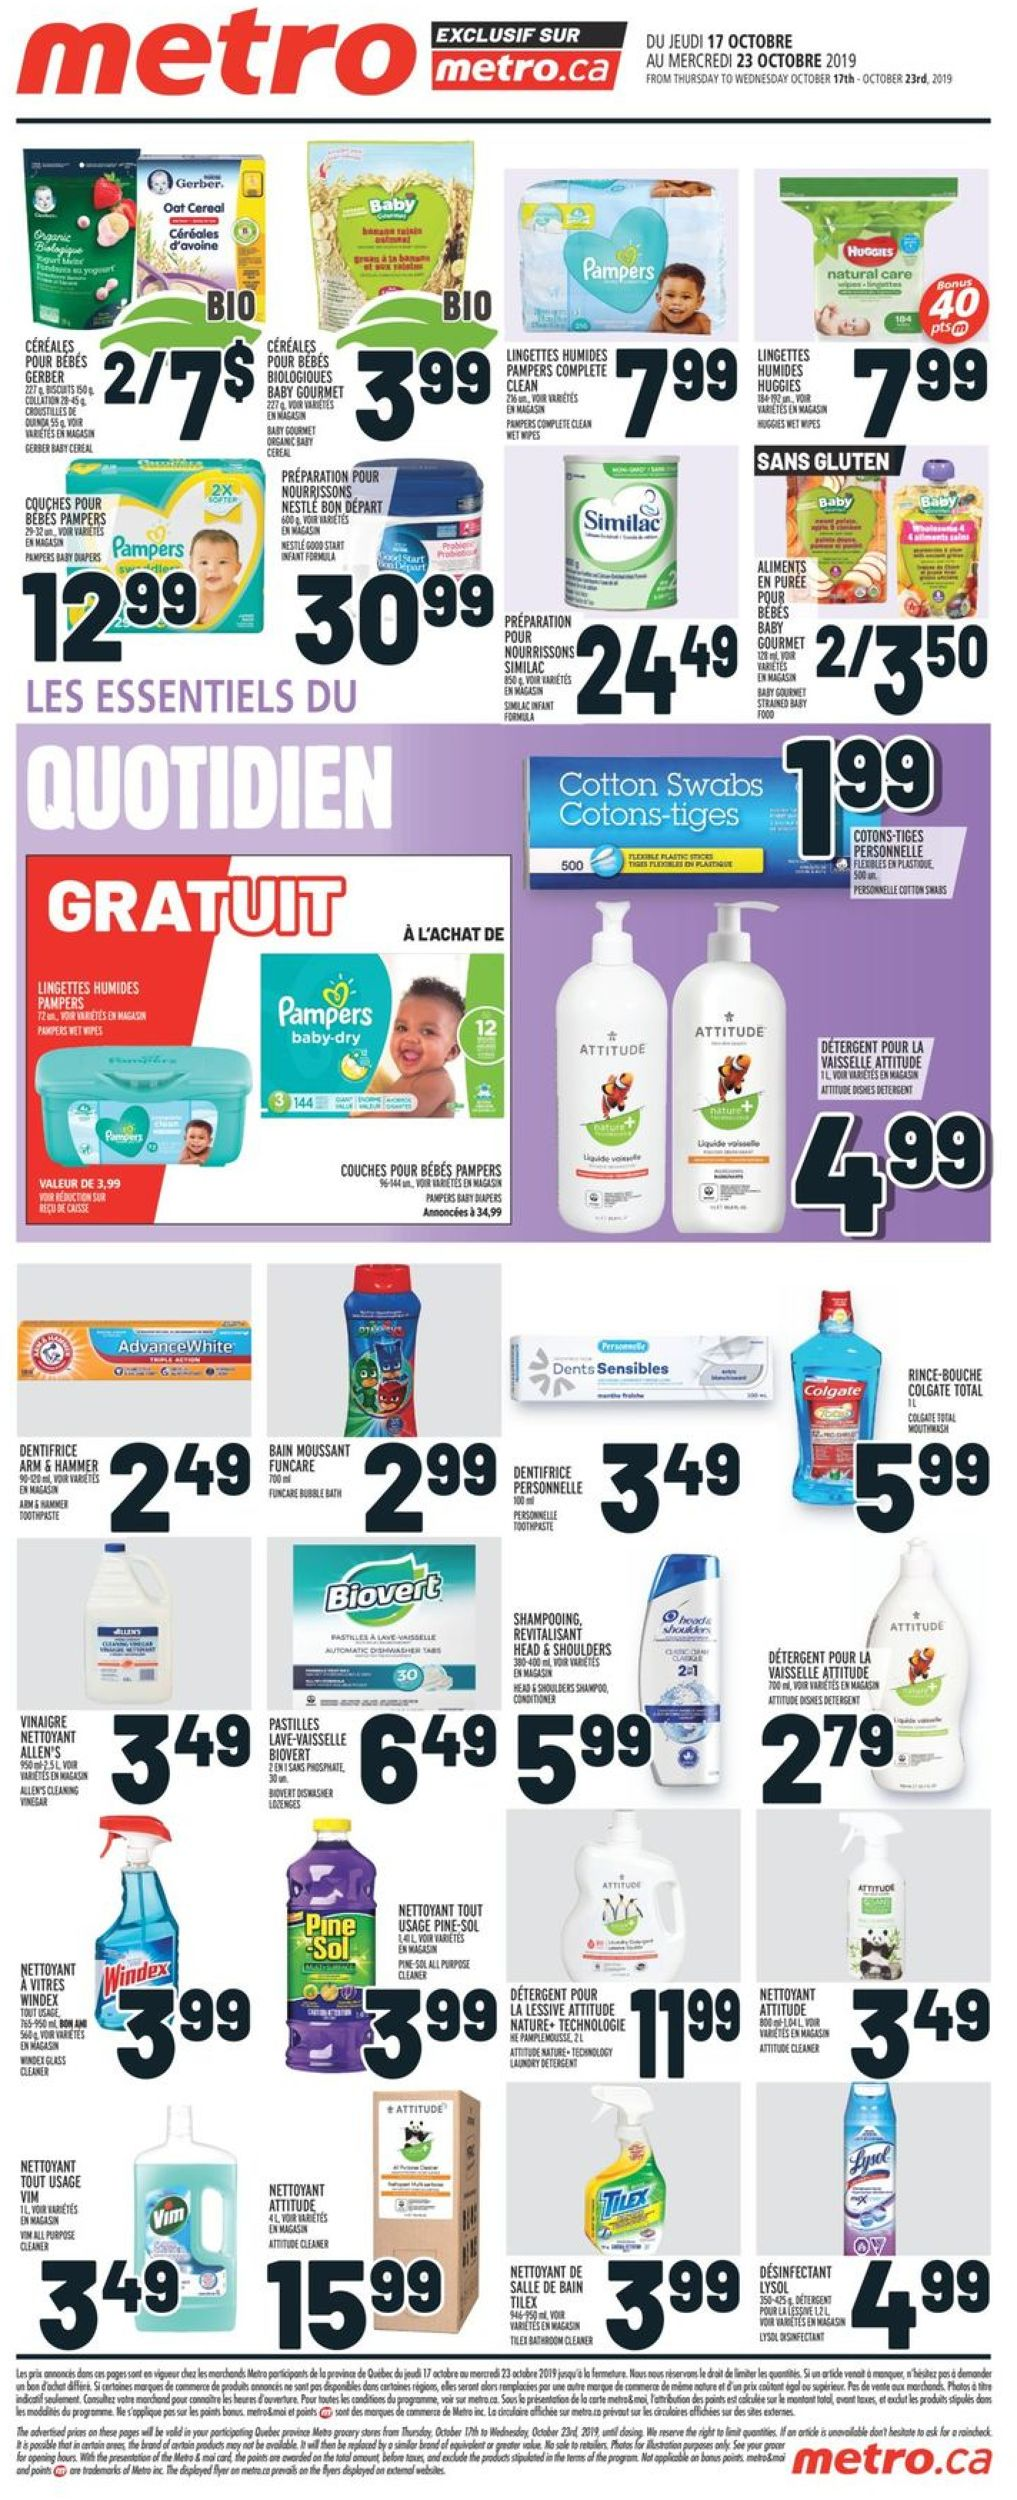 Metro Flyer - 10/17-10/23/2019 (Page 11)